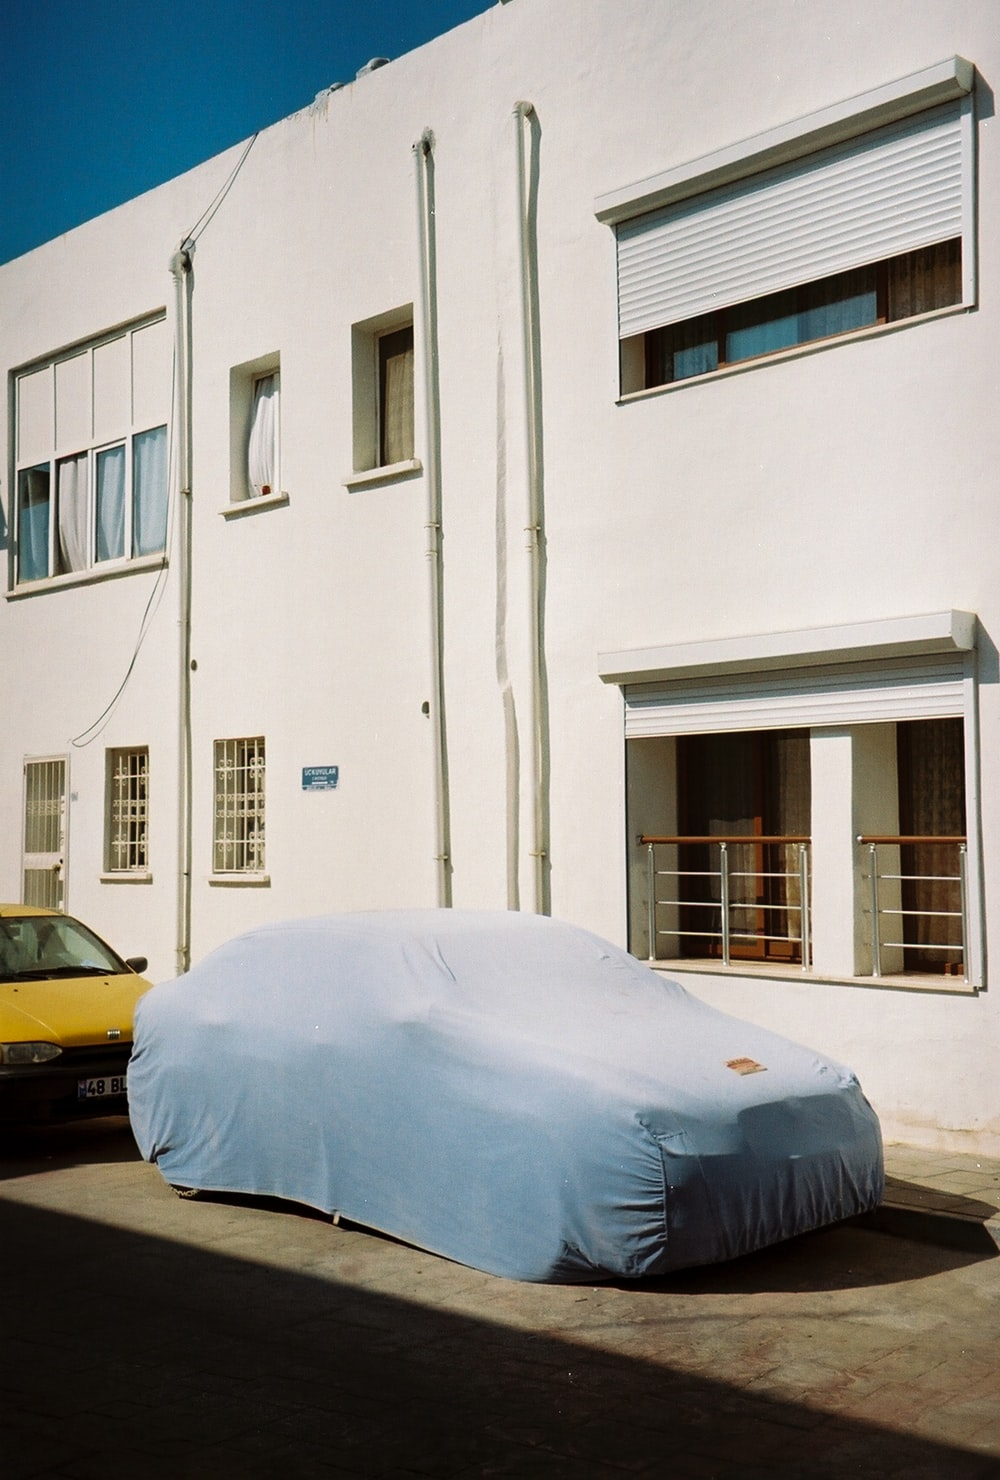 yellow car parked beside white concrete building during daytime